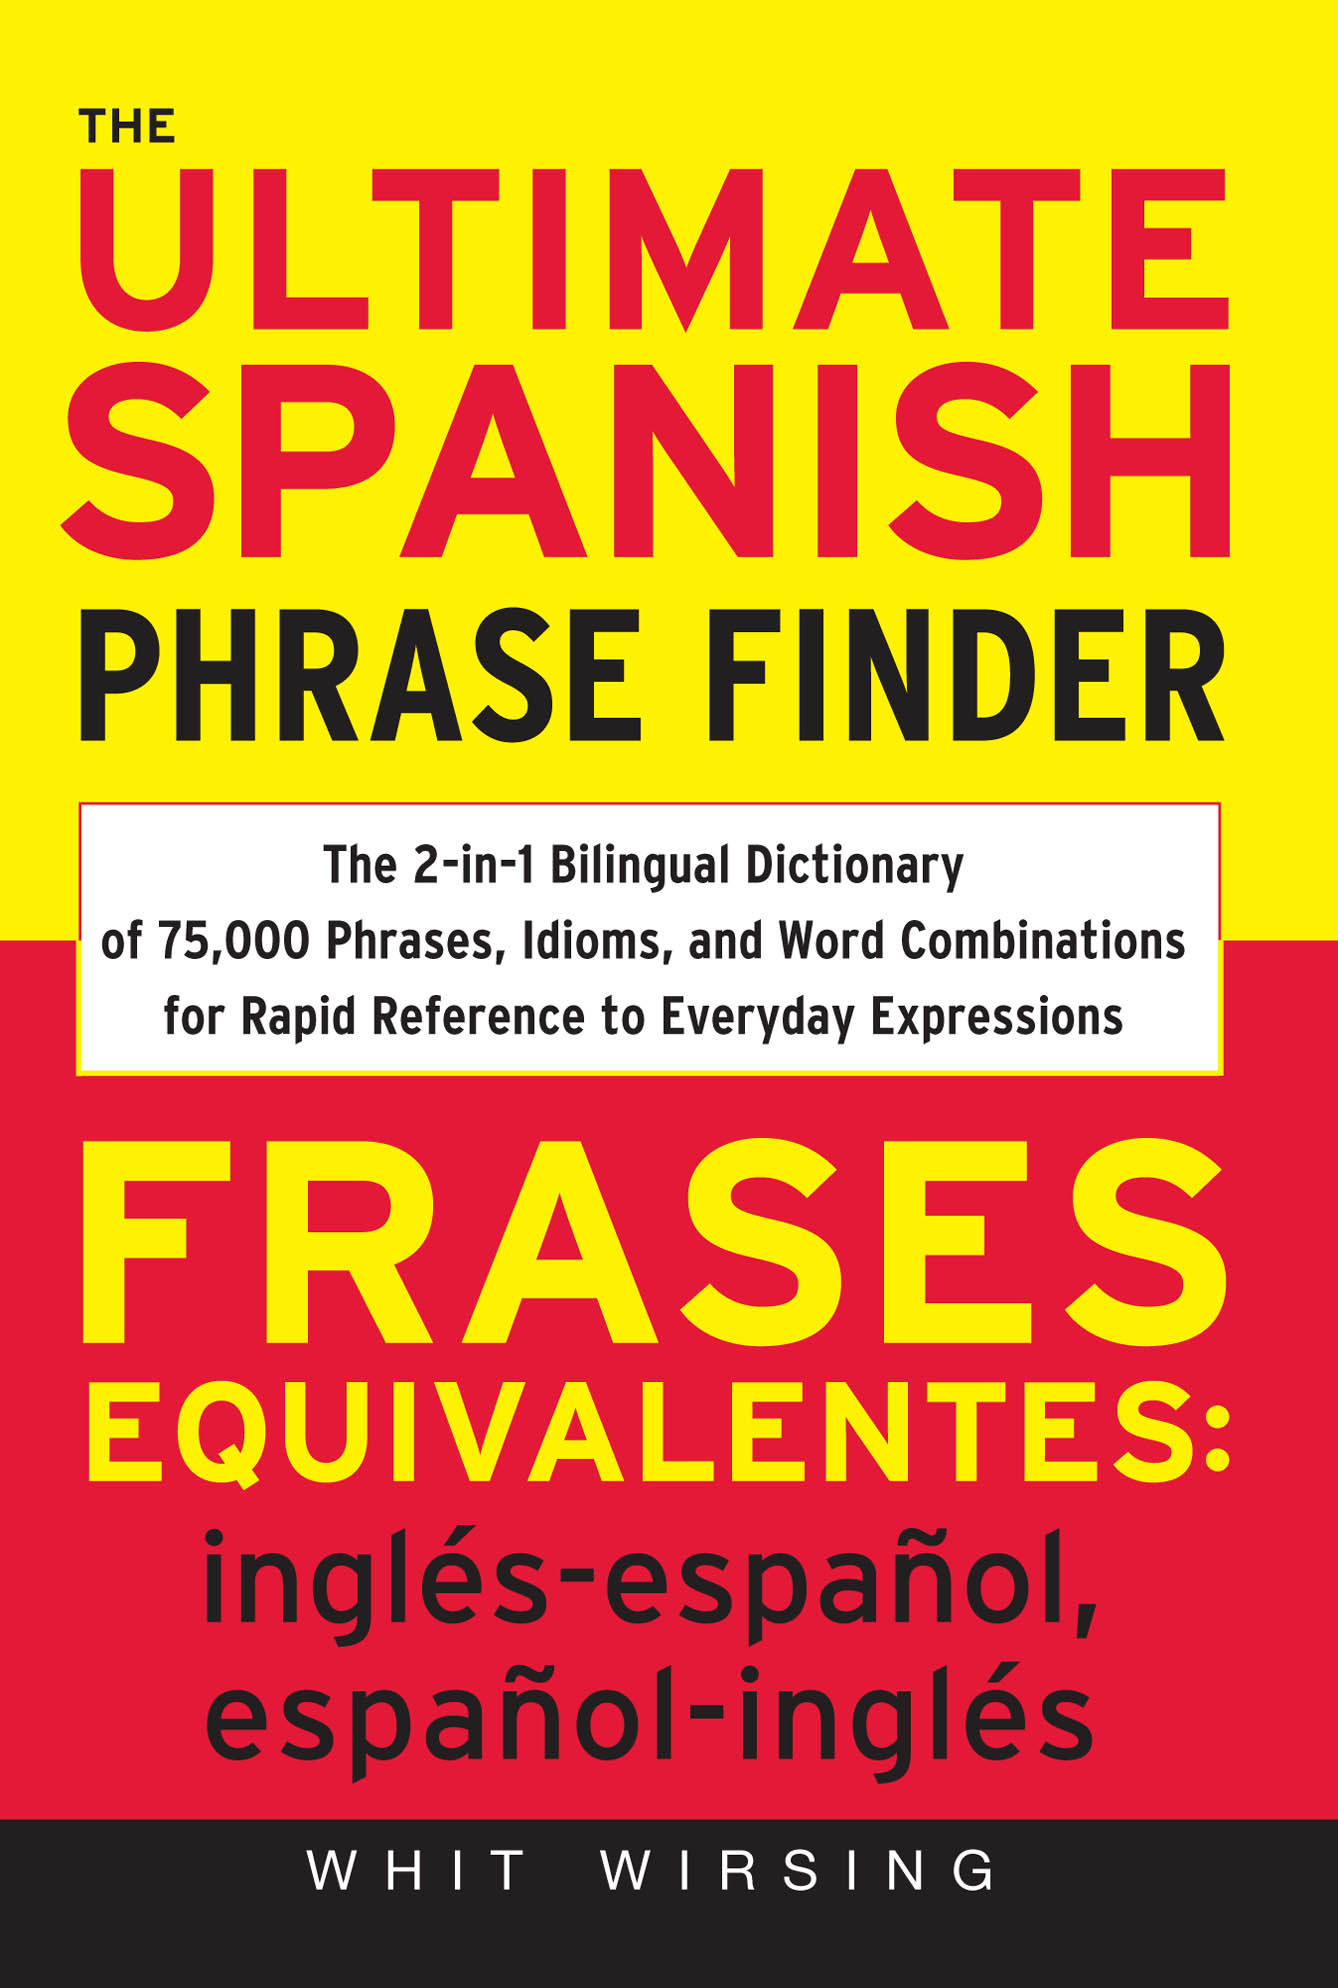 The Ultimate Spanish Phrase Finder : The 2-in-1 Bilingual Dictionary of 75,000 Phrases, Idioms, and Word Combinations for Rapid Reference By: Whit Wirsing